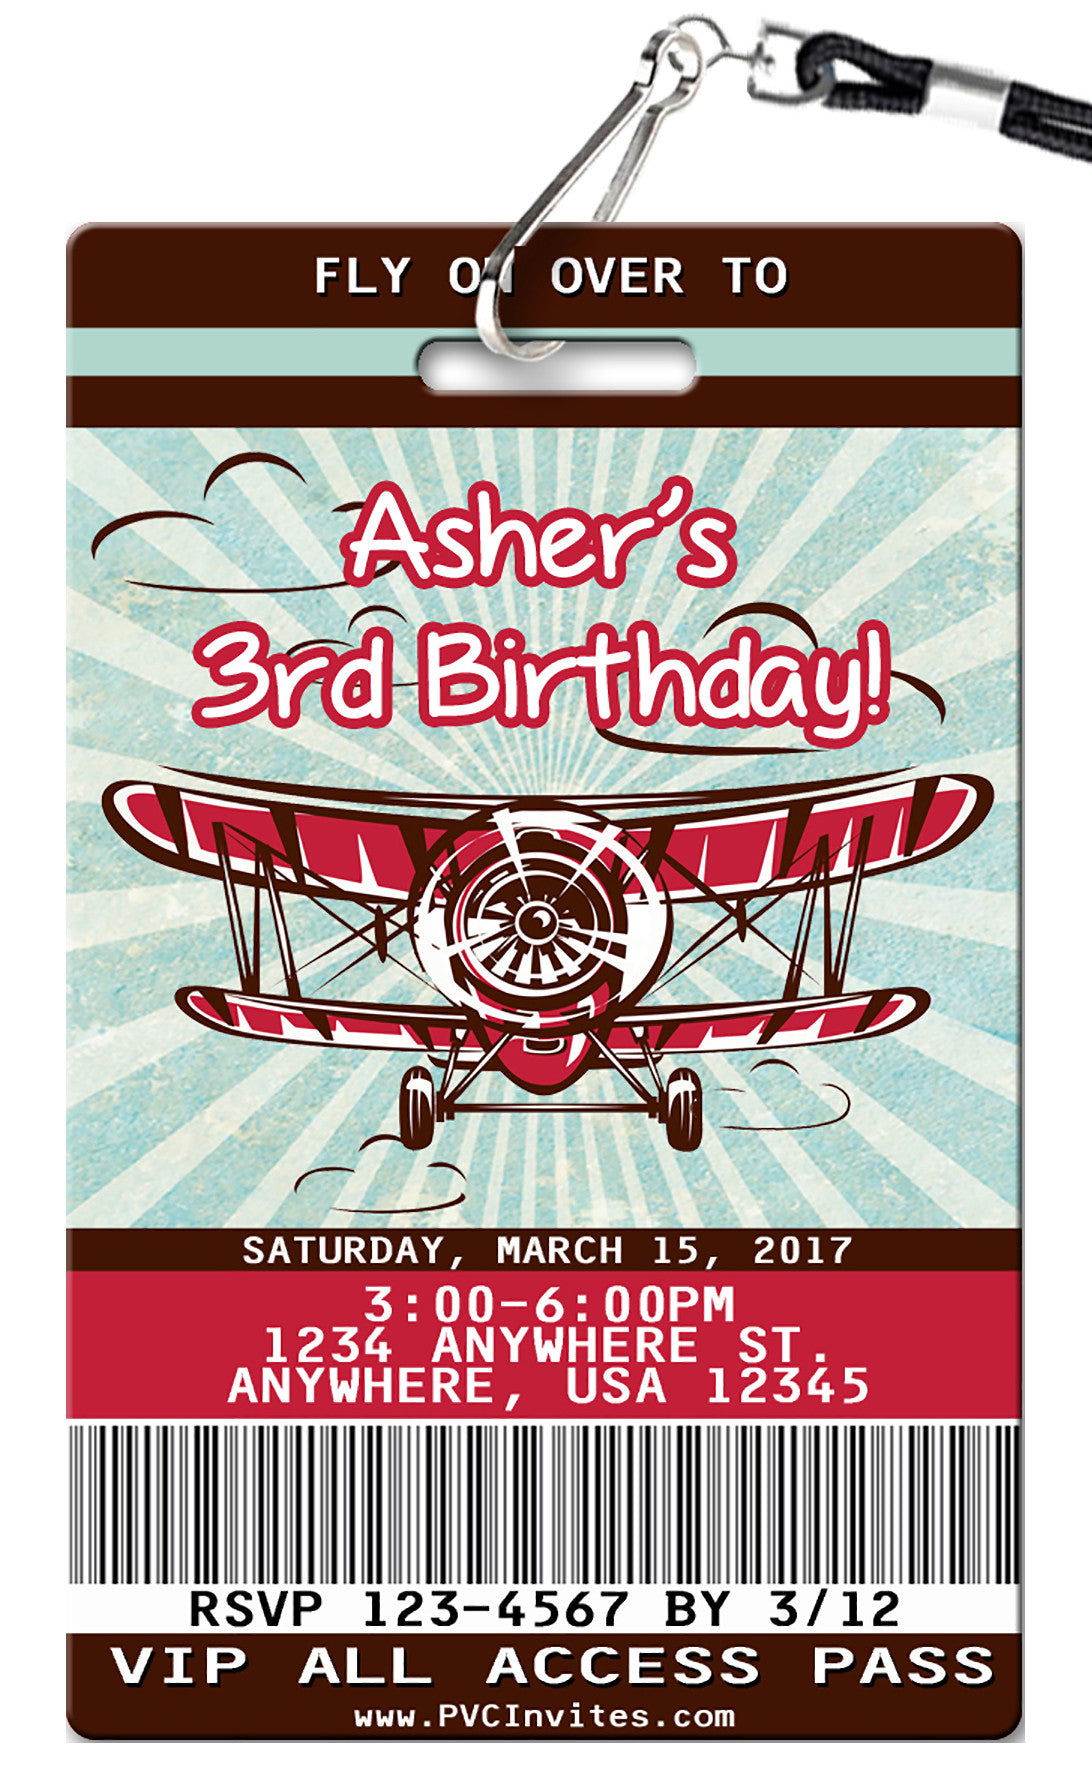 Airplane Birthday Invitation - PVC Invites - VIP Birthday Invitations